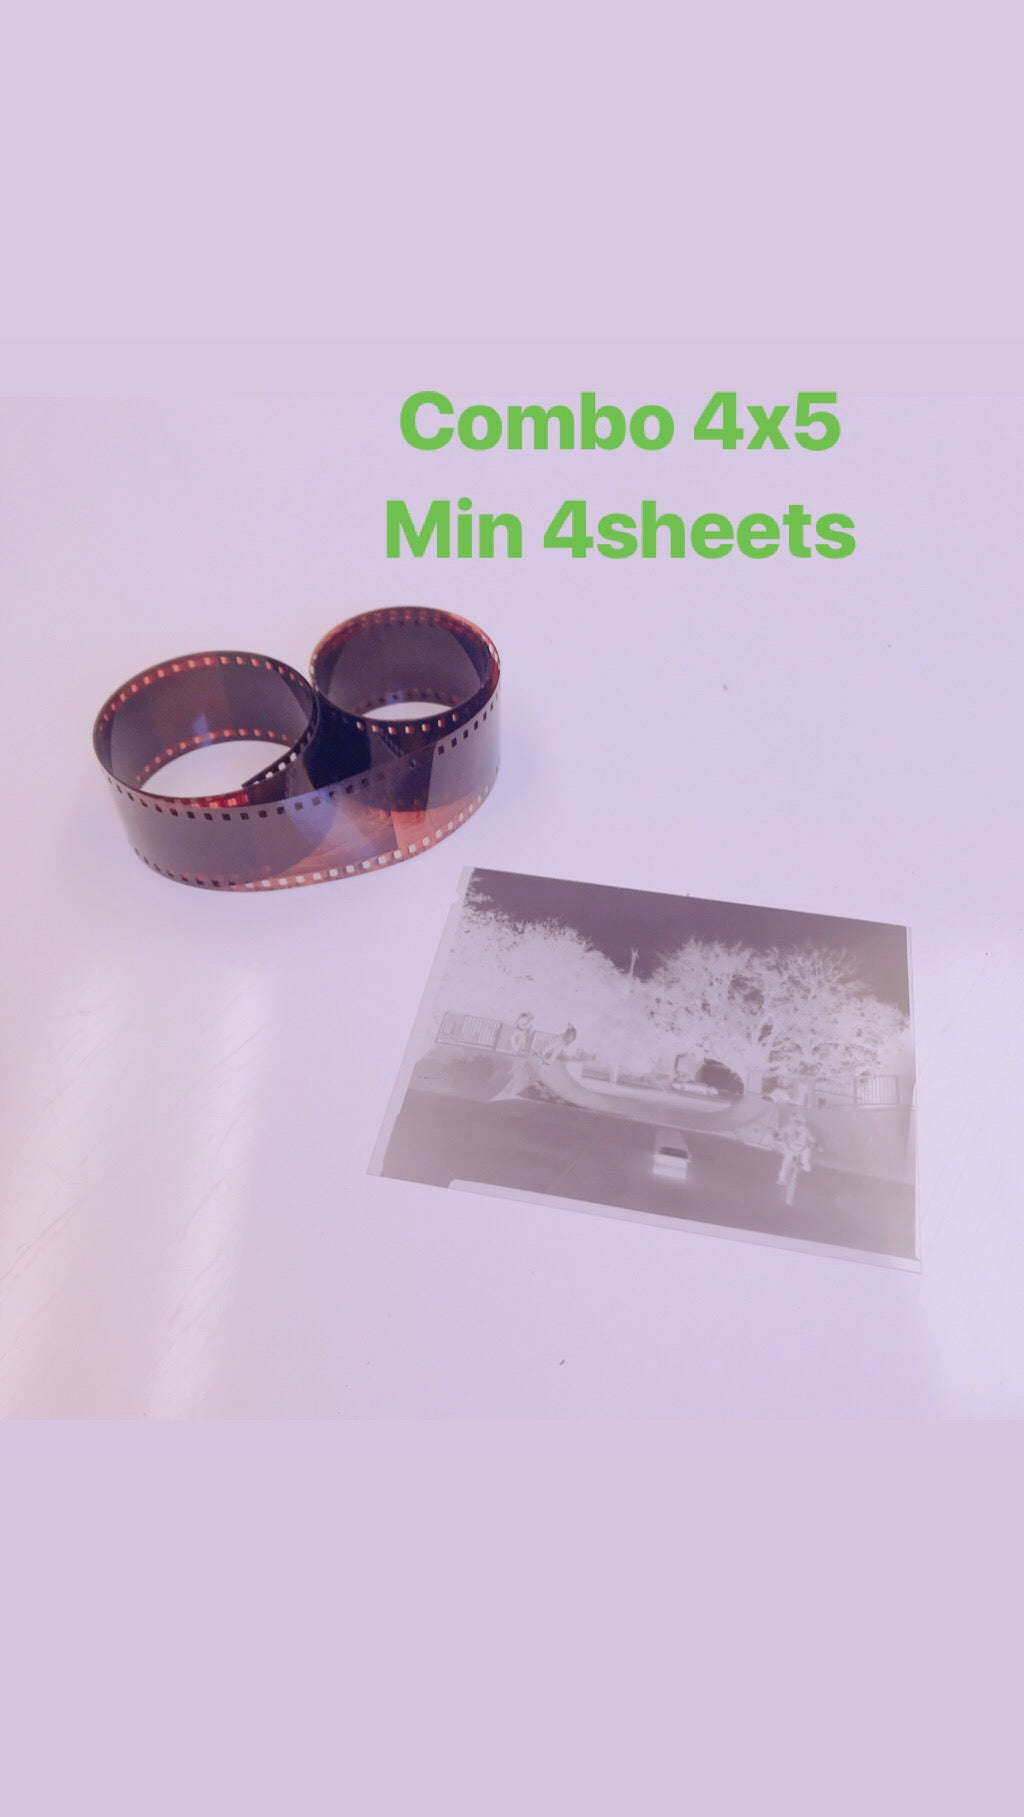 Film Develop Scan combo 4x5 (per sheet) Min 4 sheets (Standard quality)